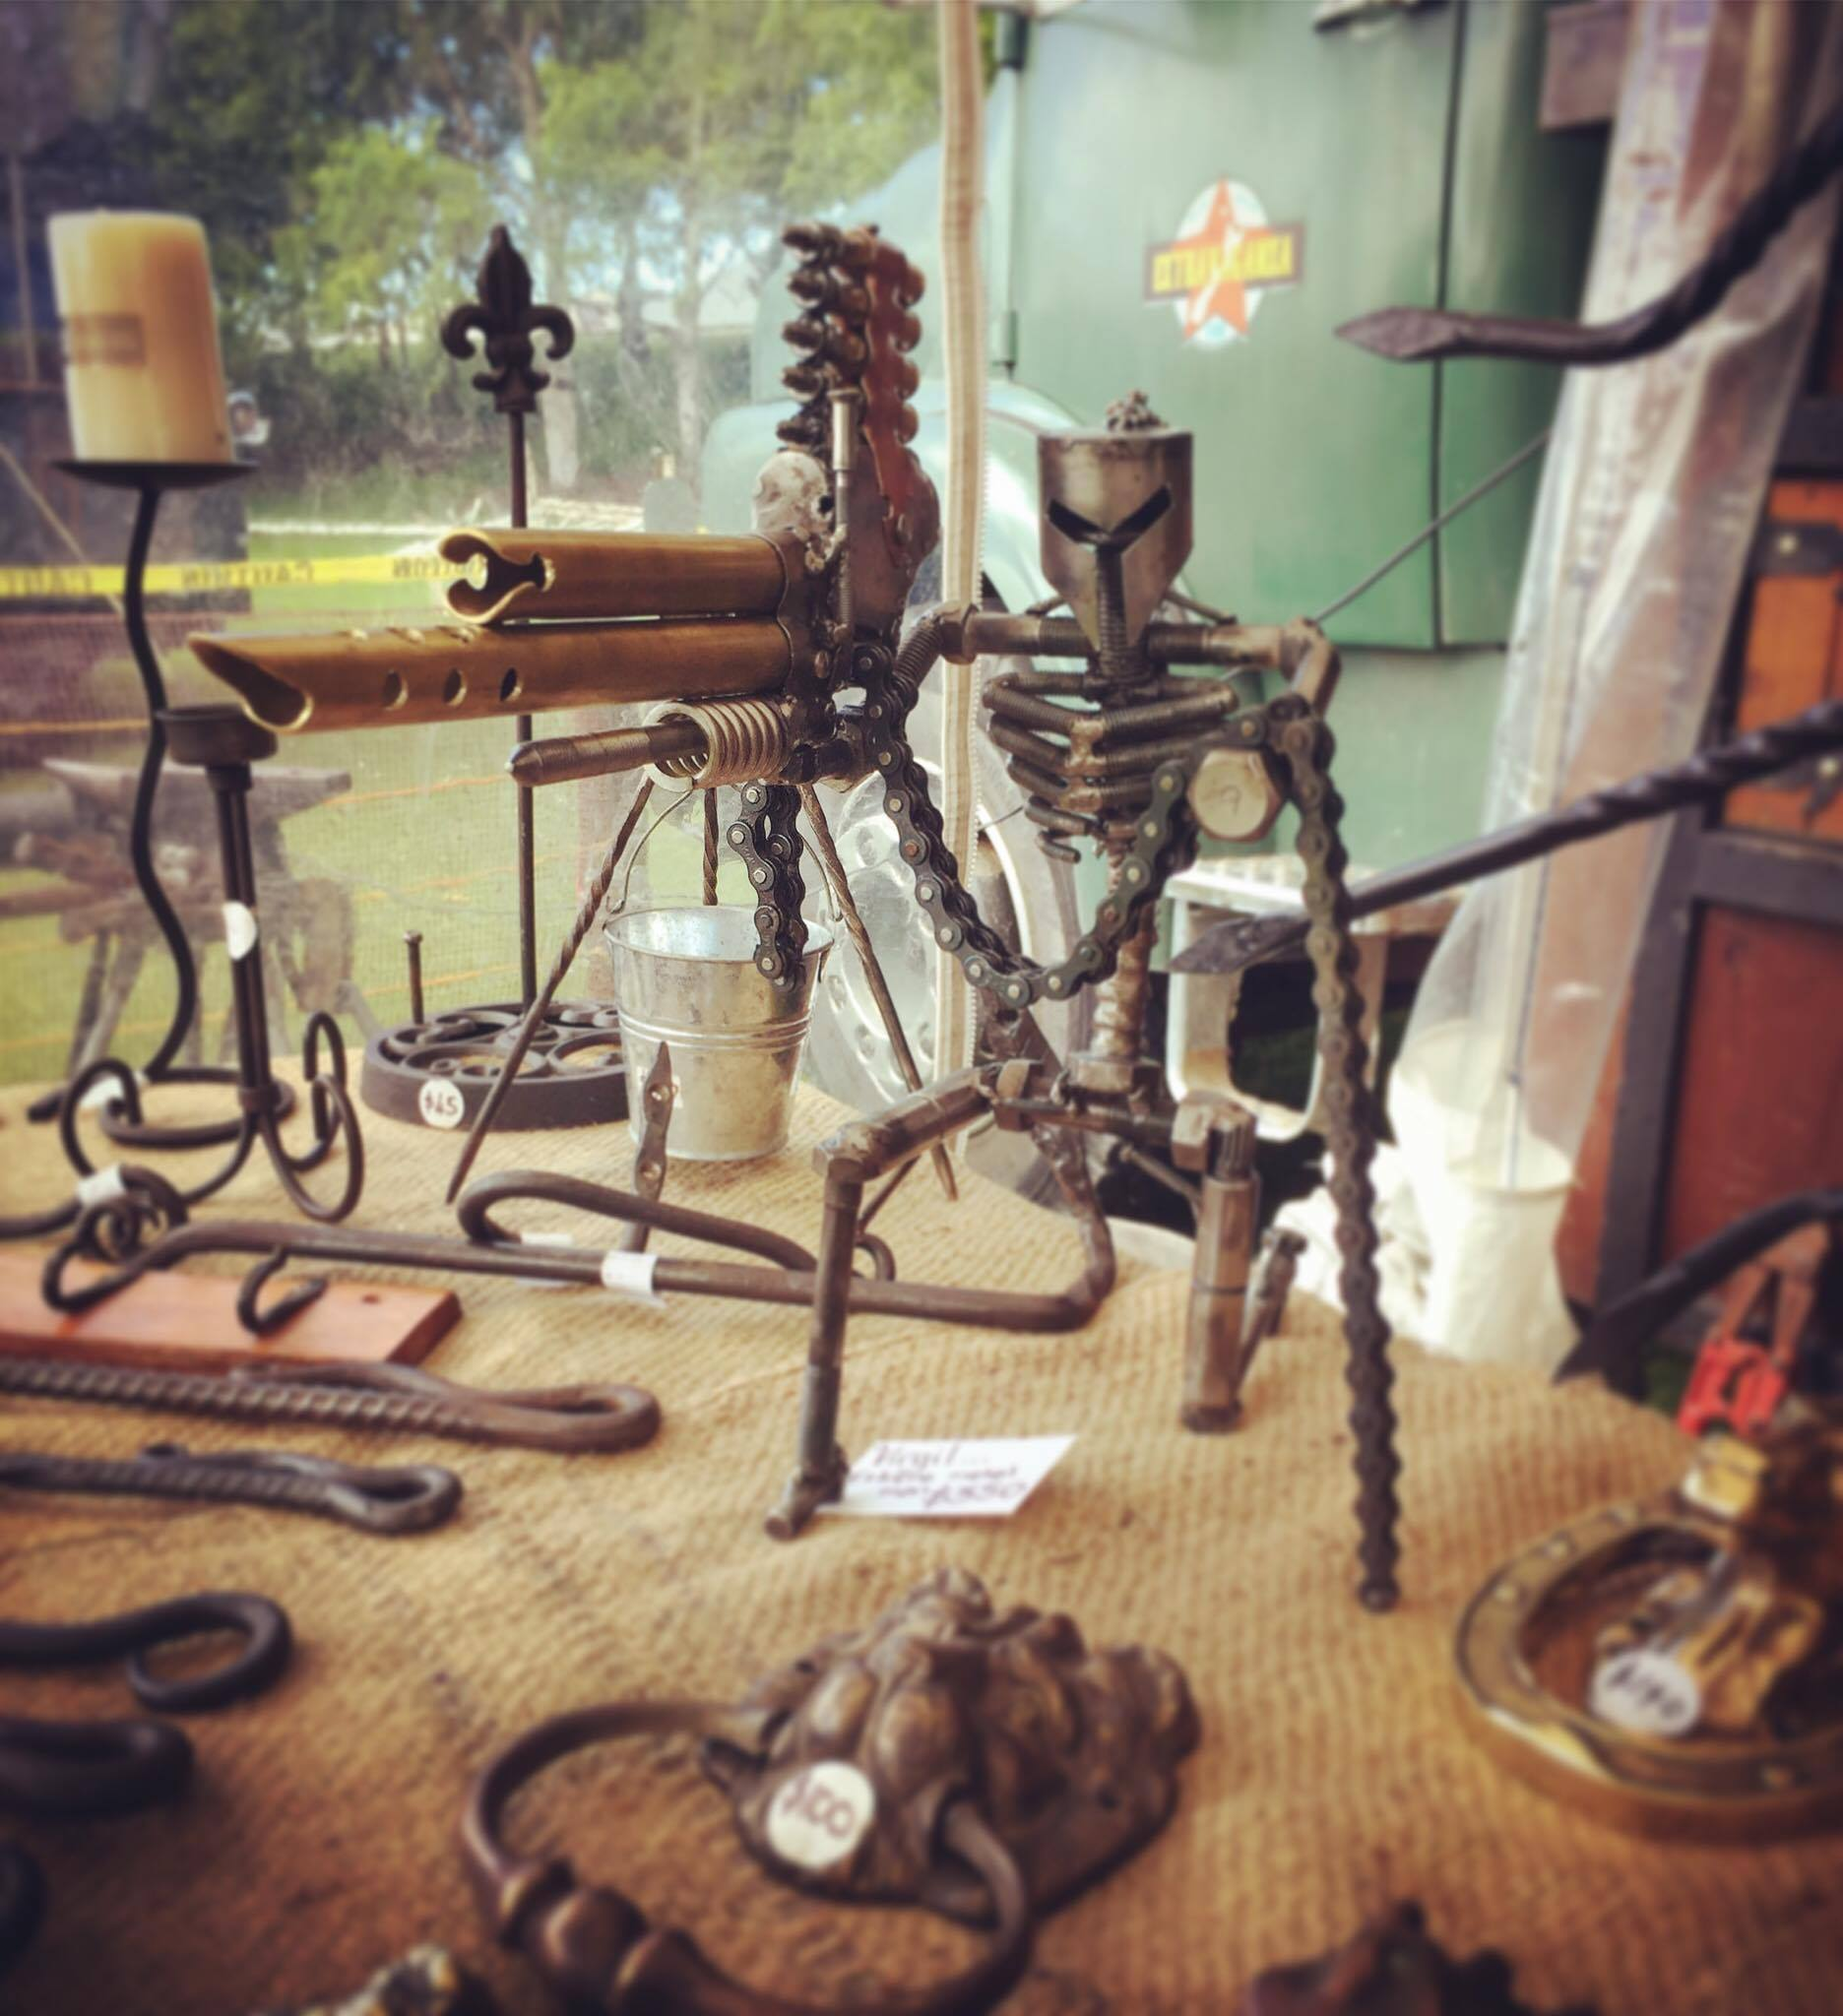 Handmade by our Resident Blacksmith - Thorny